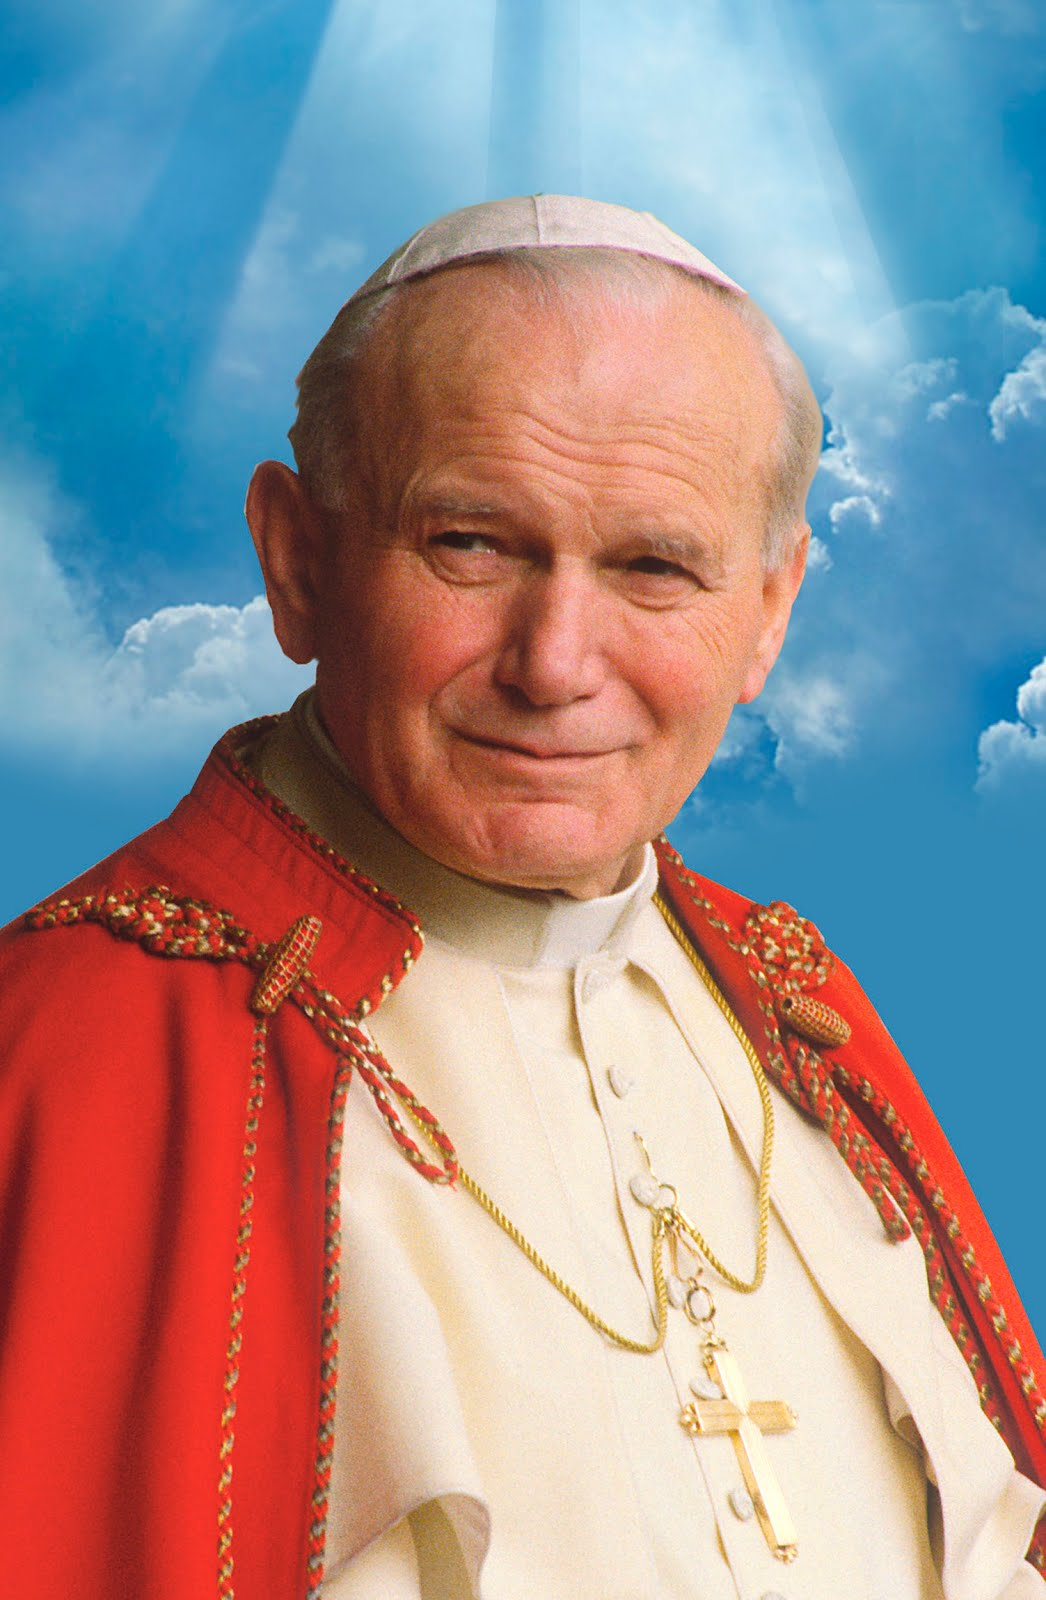 THE COMMUNITY OF ST. JOHN PAUL II